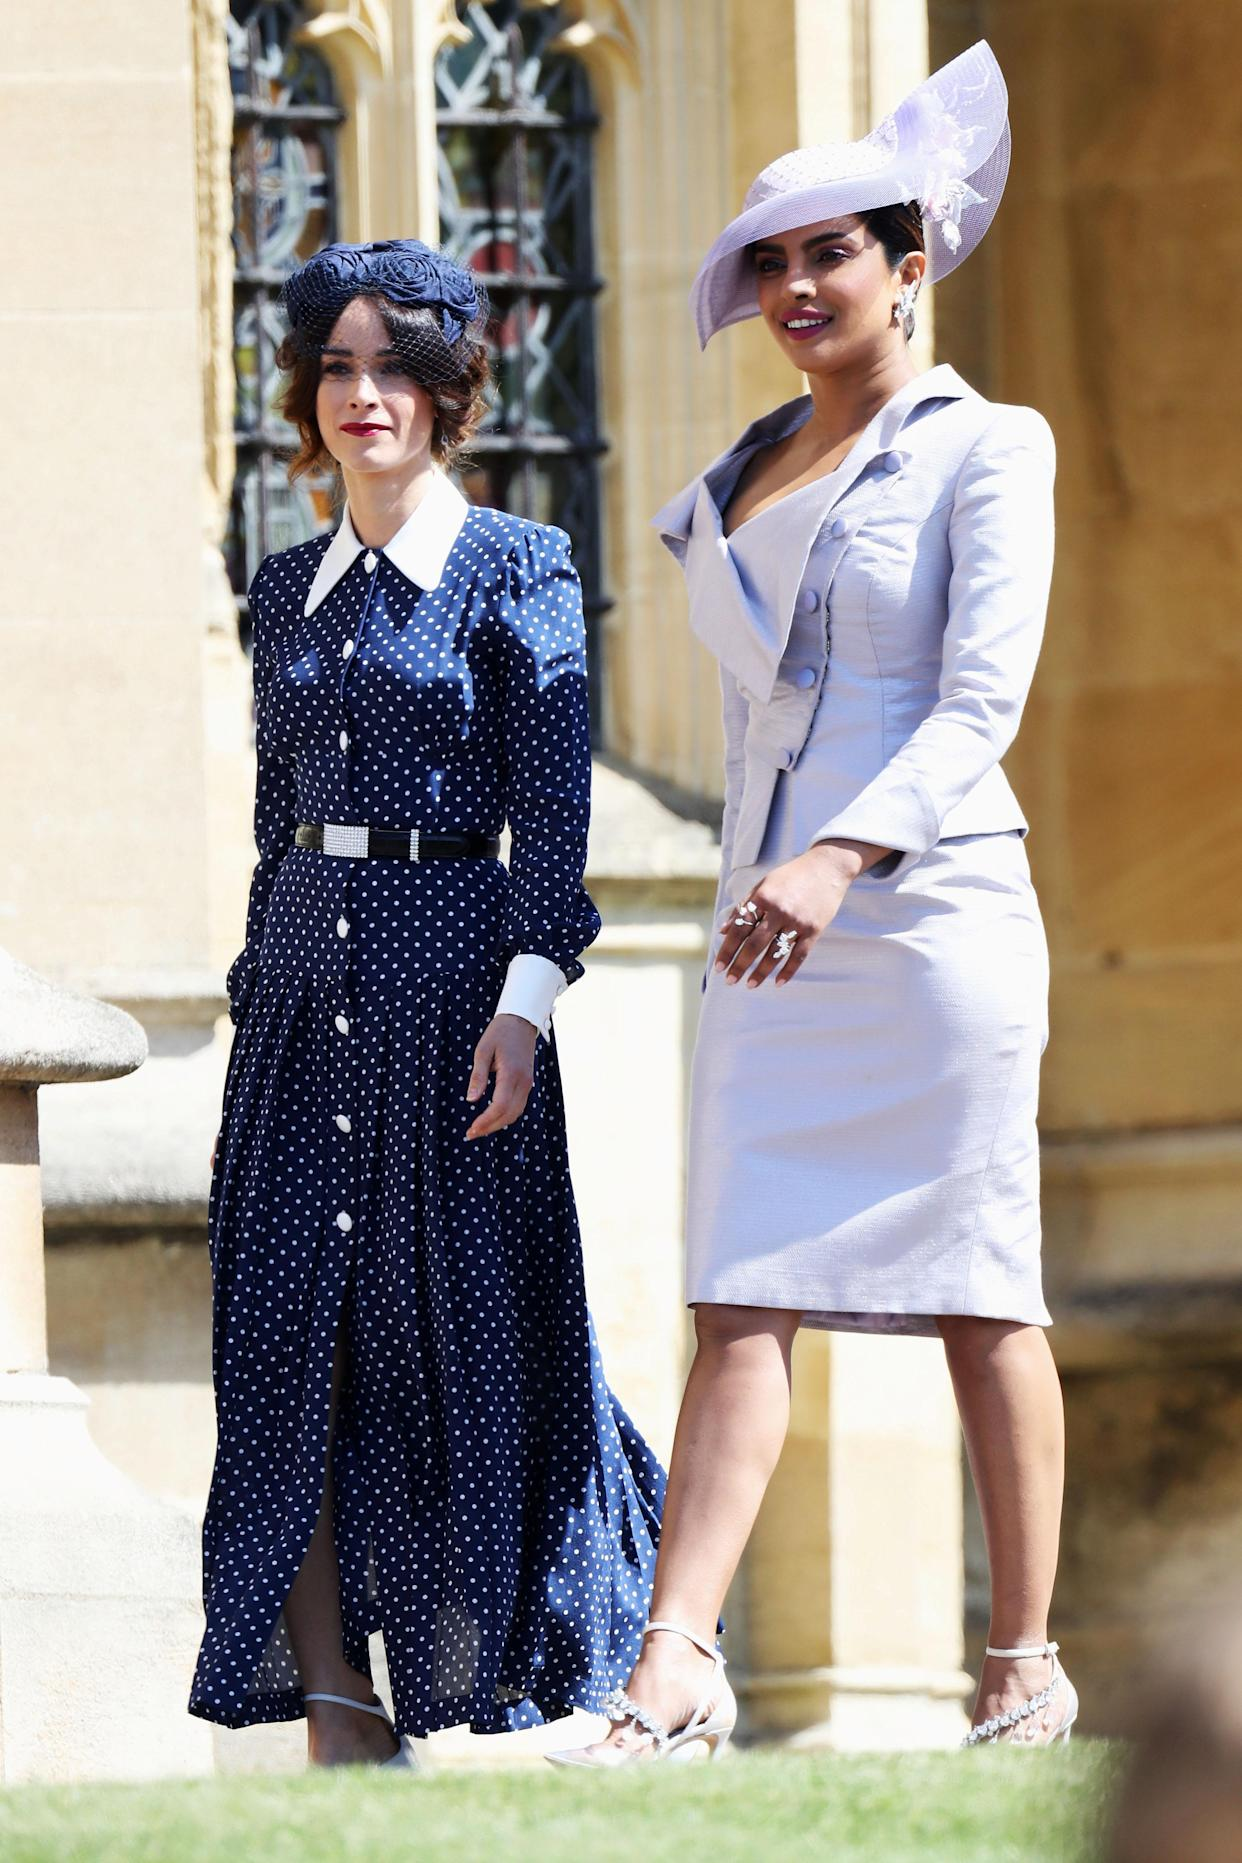 (L-R)Abigail Spencer and Priyanka Chopra arrive at the wedding of Prince Harry to Ms Meghan Markle at St George's Chapel, Windsor Castle on May 19, 2018 in Windsor, England.  Chris Jackson/Pool via REUTERS